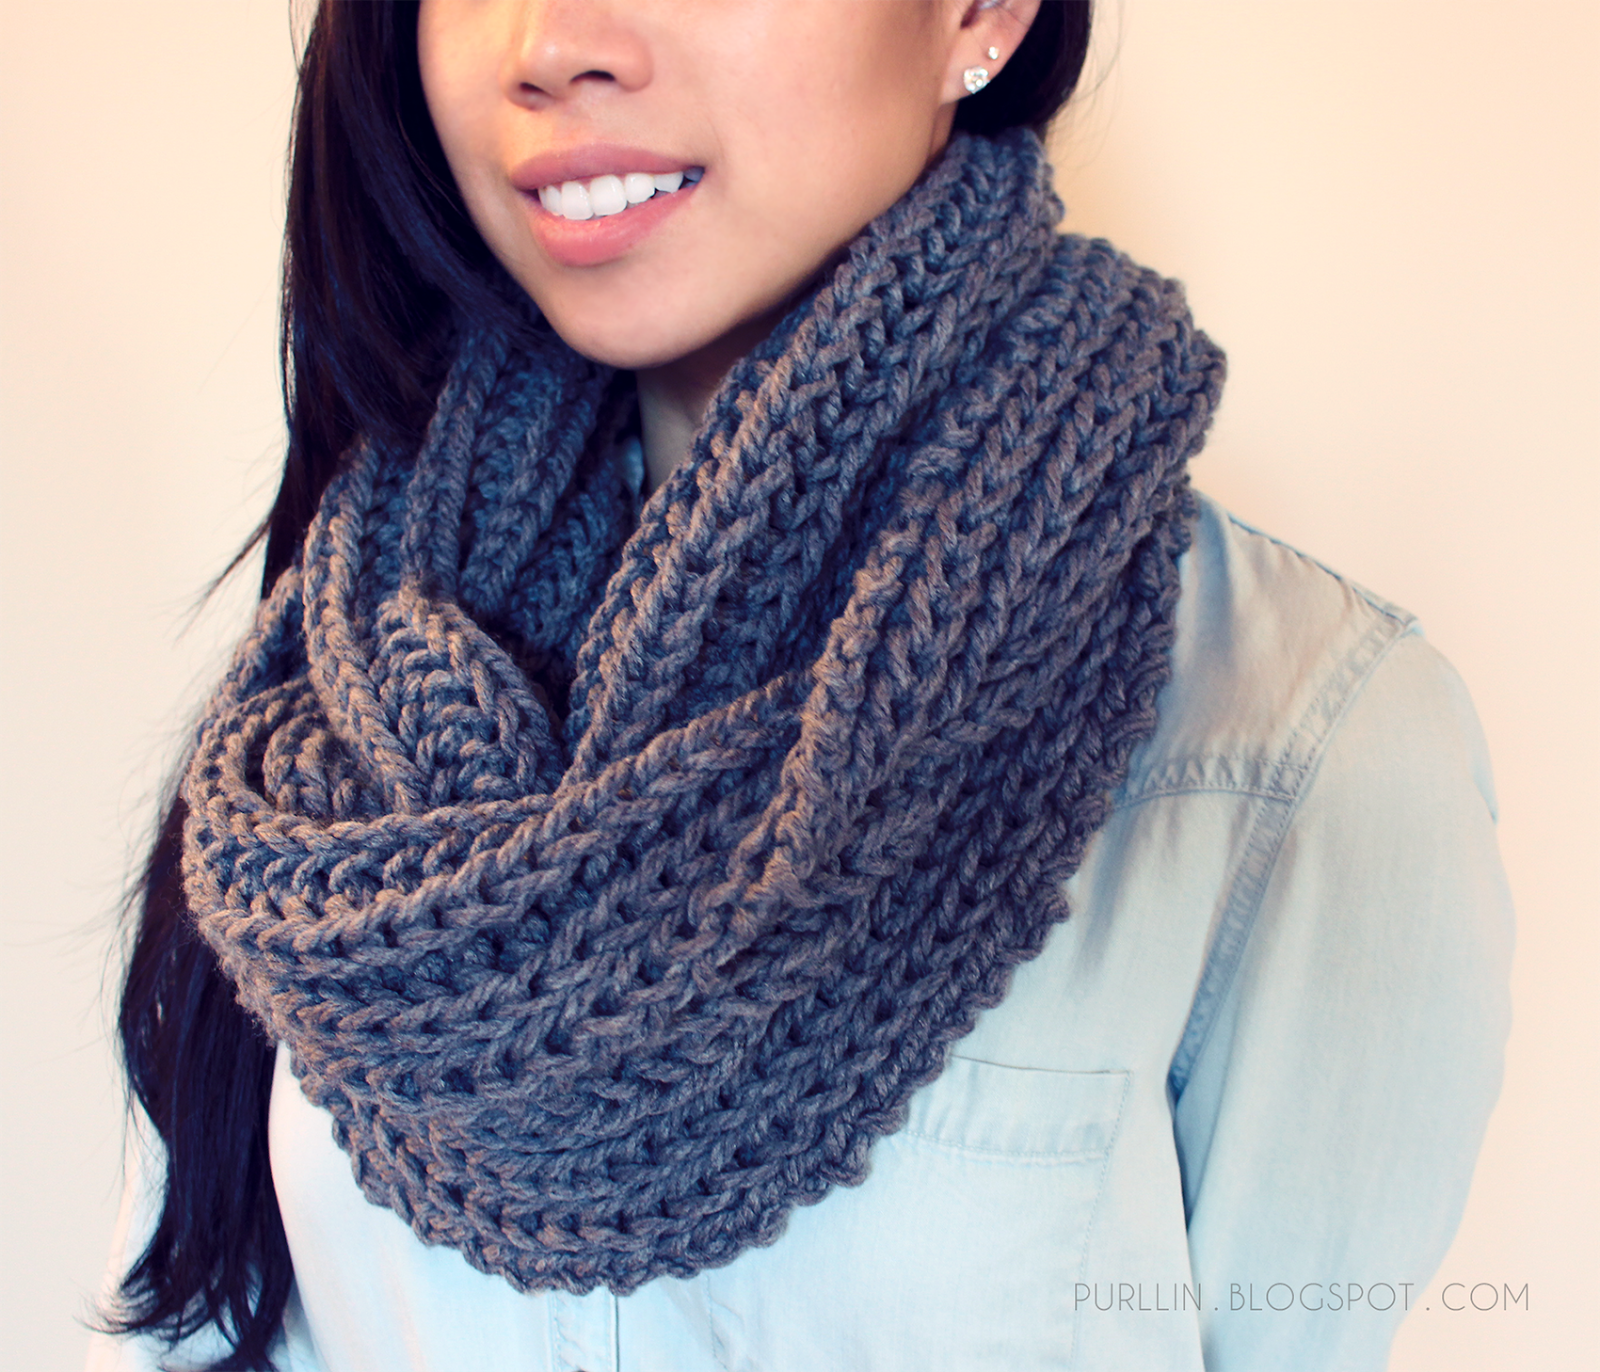 Knitting Pattern For Chunky Infinity Scarf : Purllin: Textured November Infinity Scarf Free Pattern